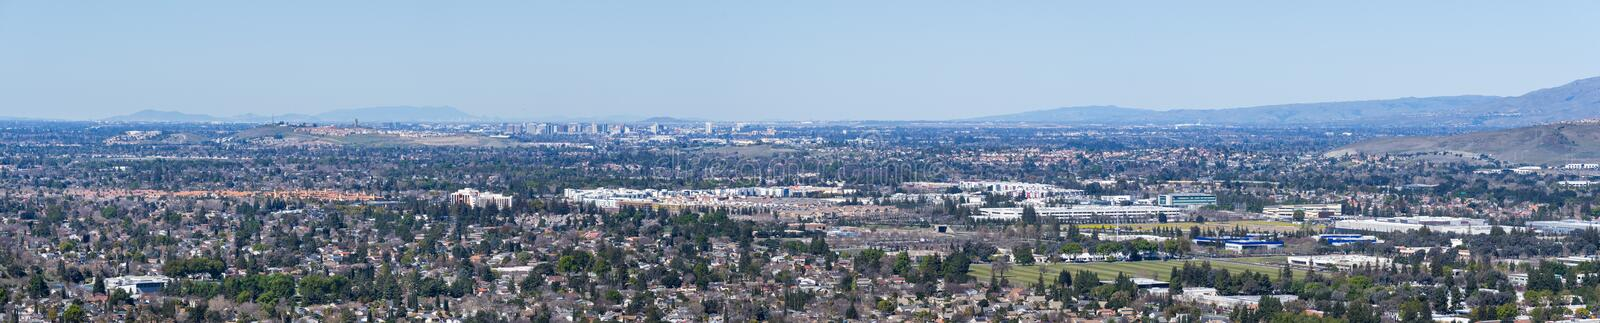 Aerial view of San Jose. Diablo mountain range in the background, south San Francisco bay area, California royalty free stock photo